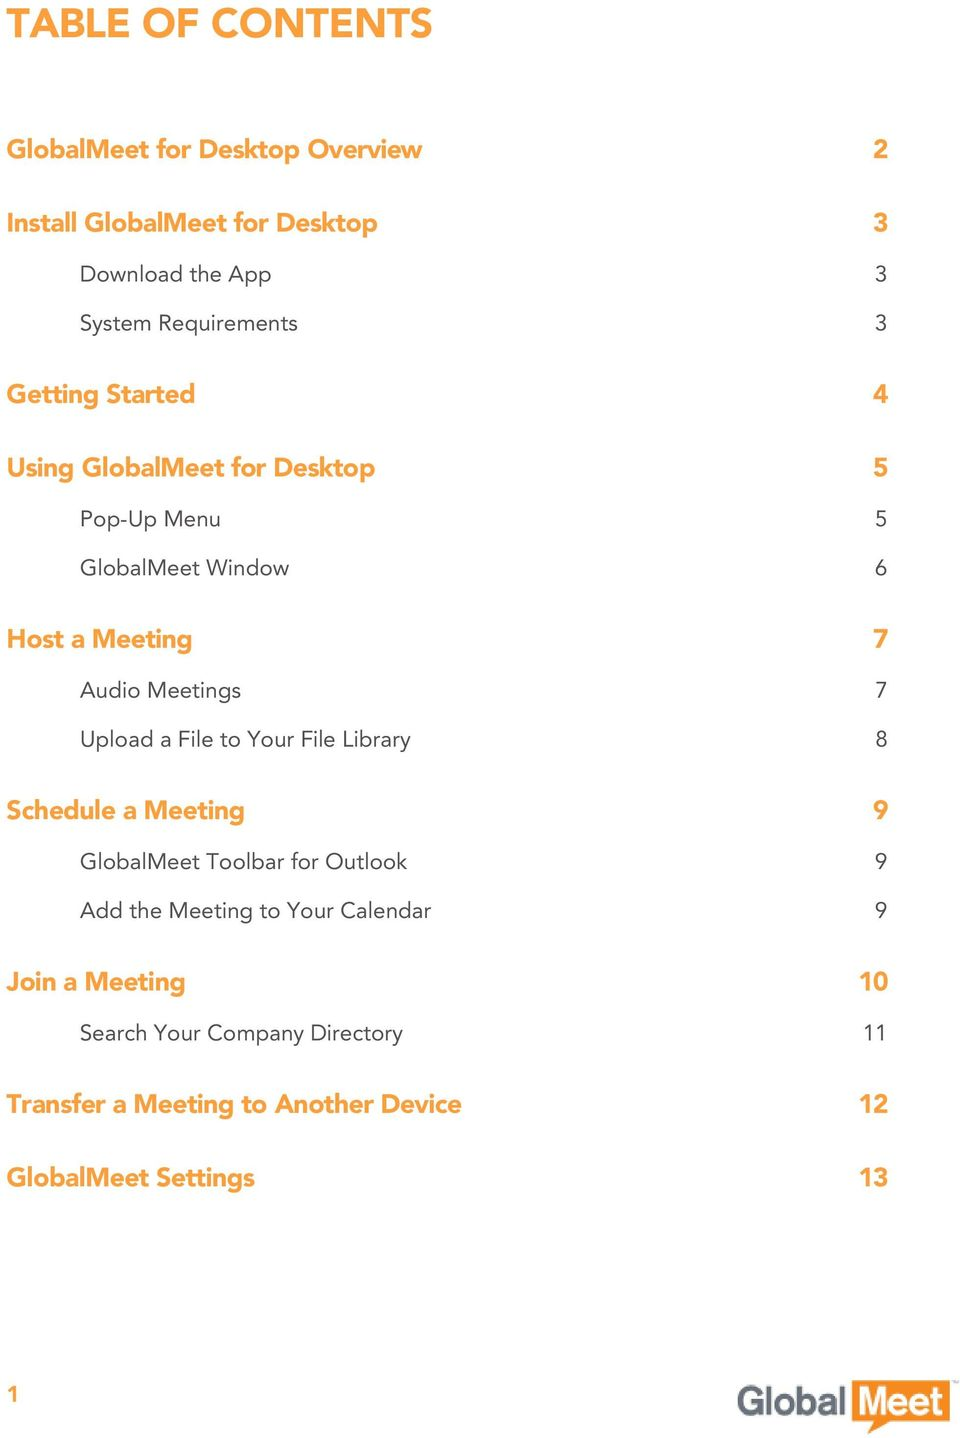 Meetings 7 Upload a File to Your File Library 8 Schedule a Meeting 9 GlobalMeet Toolbar for Outlook 9 Add the Meeting to